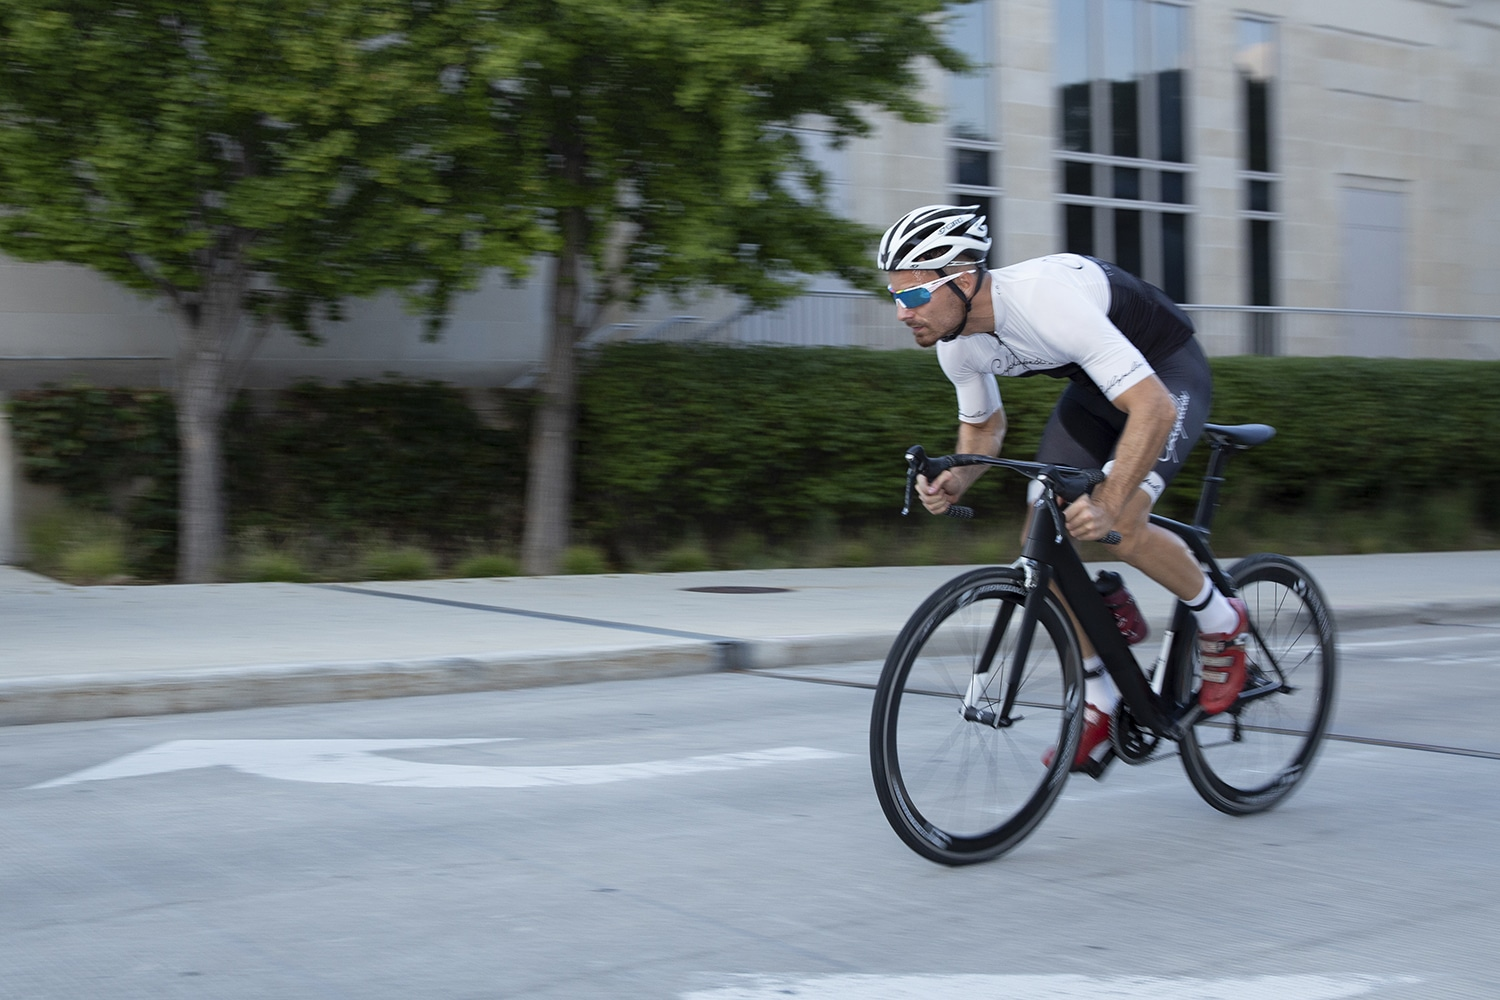 Interval training in Cycling